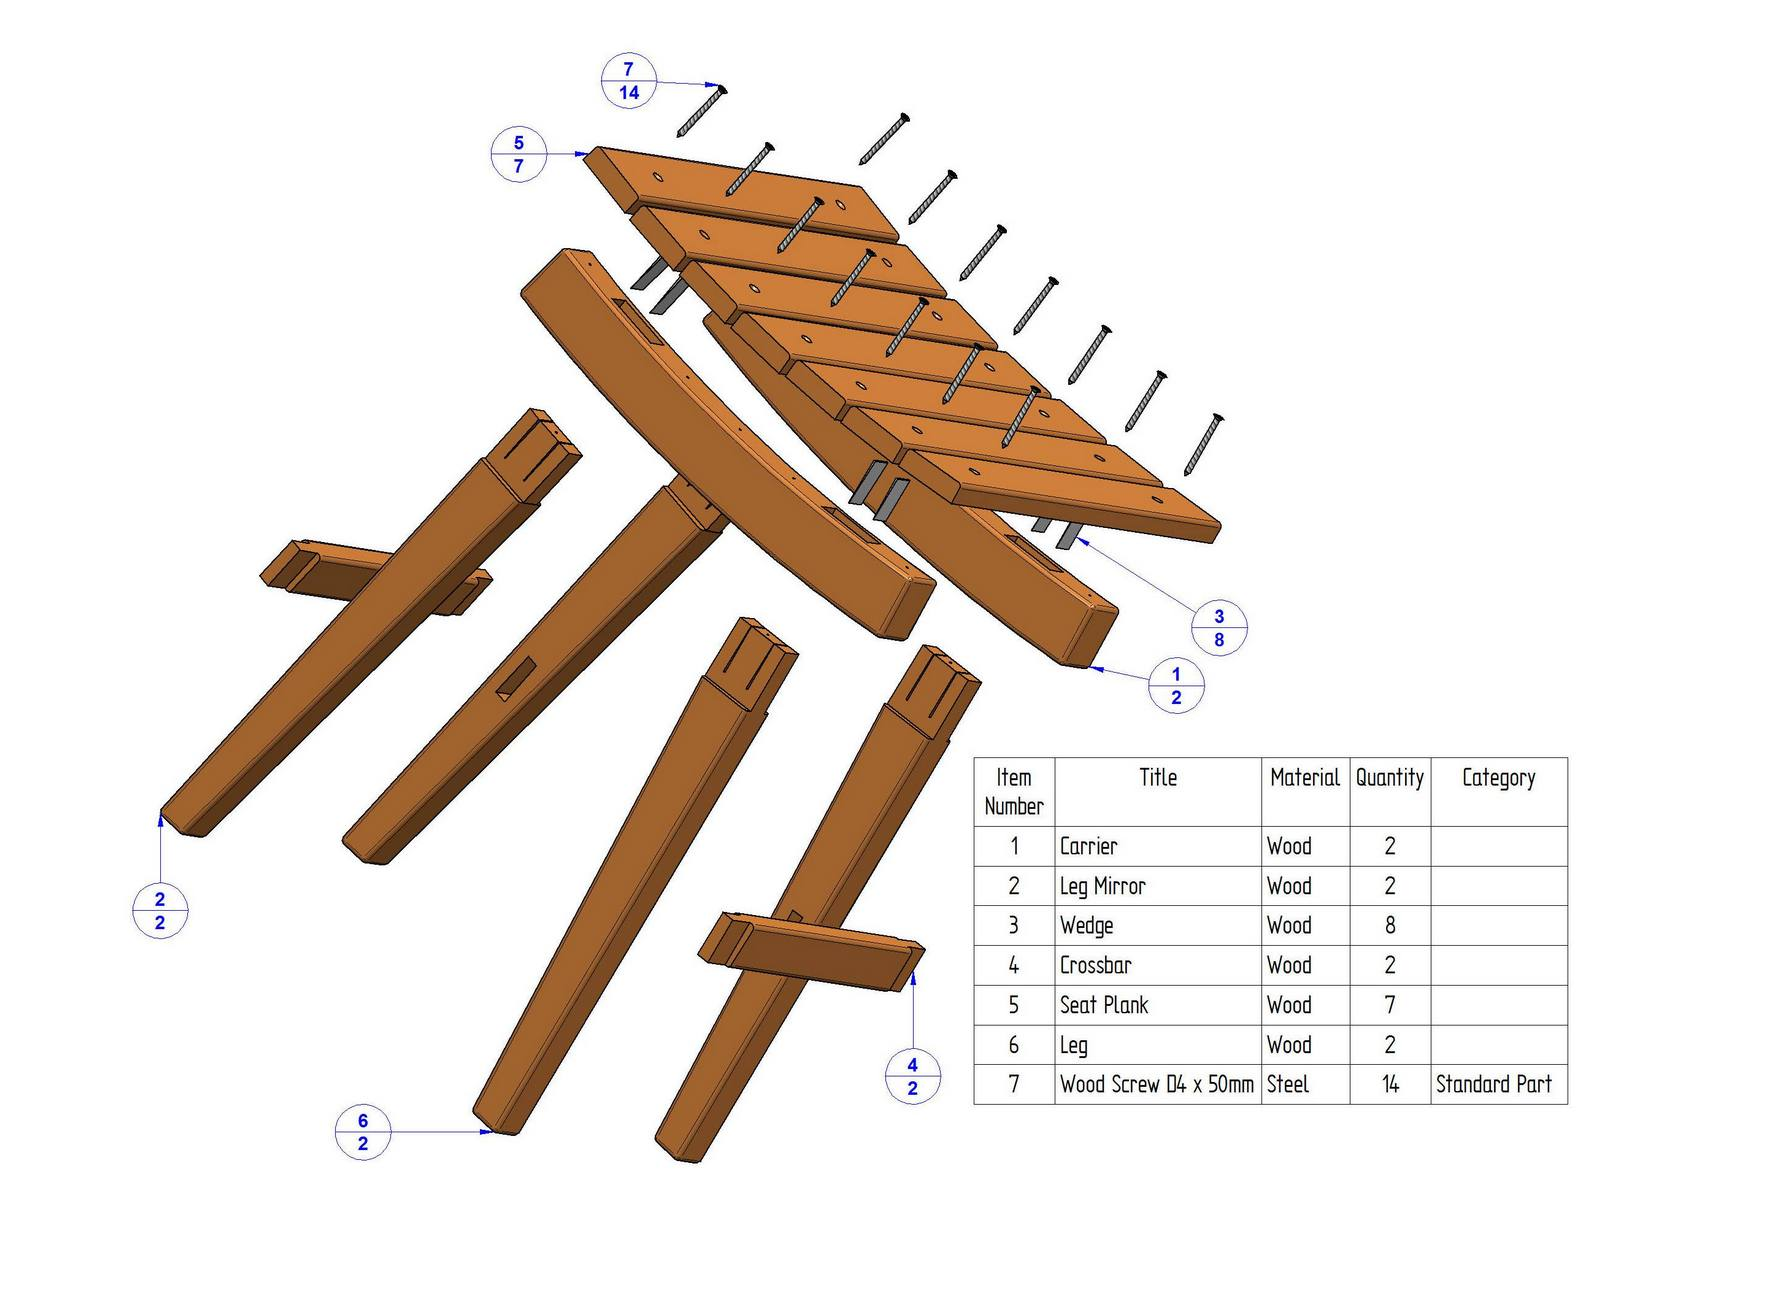 Diy Wooden Stool Plans Diy Do It Your Self